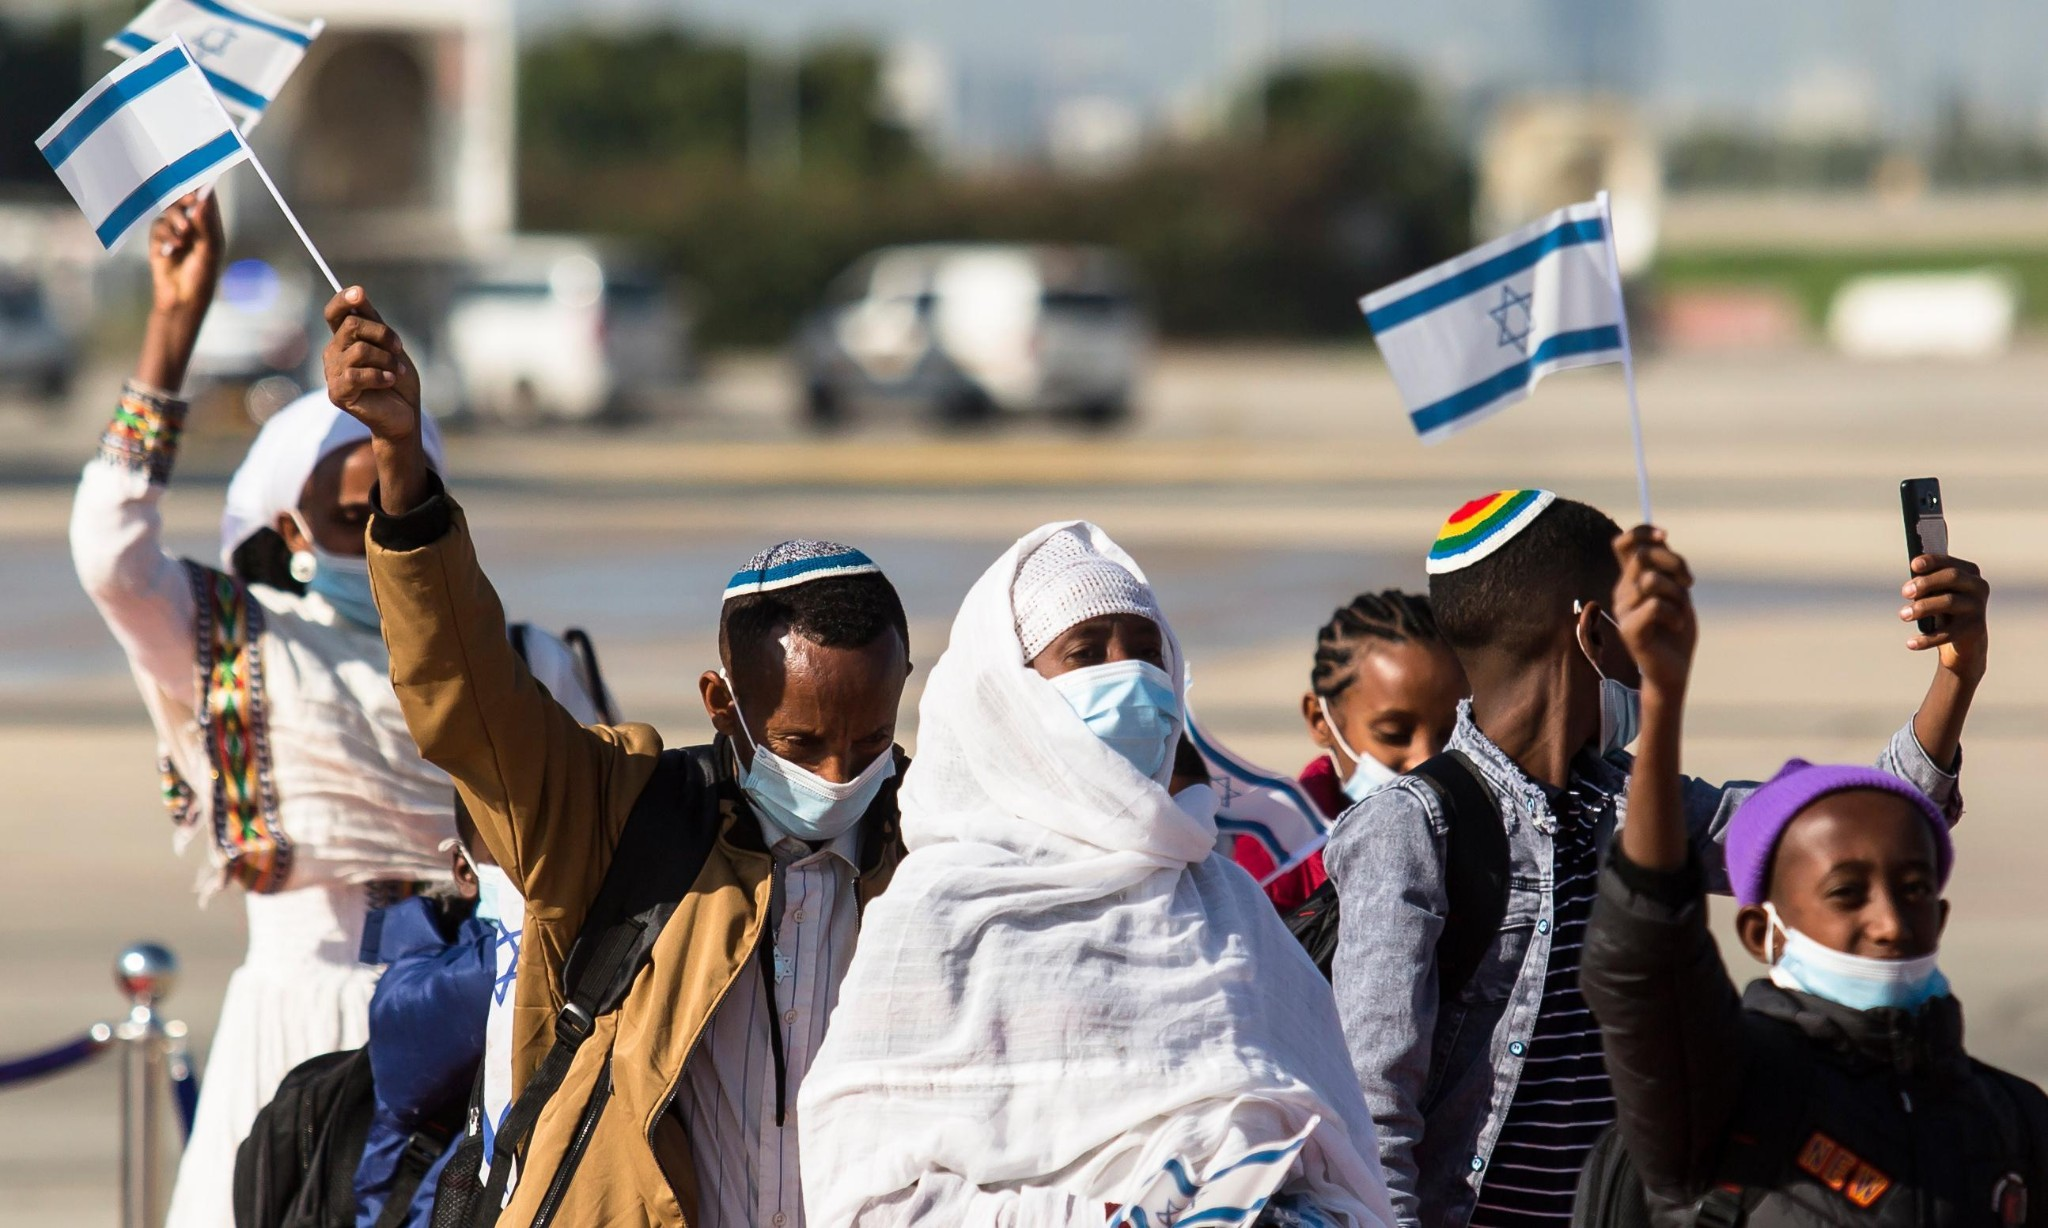 Hundreds of Ethiopian immigrants welcomed in Israel by PM